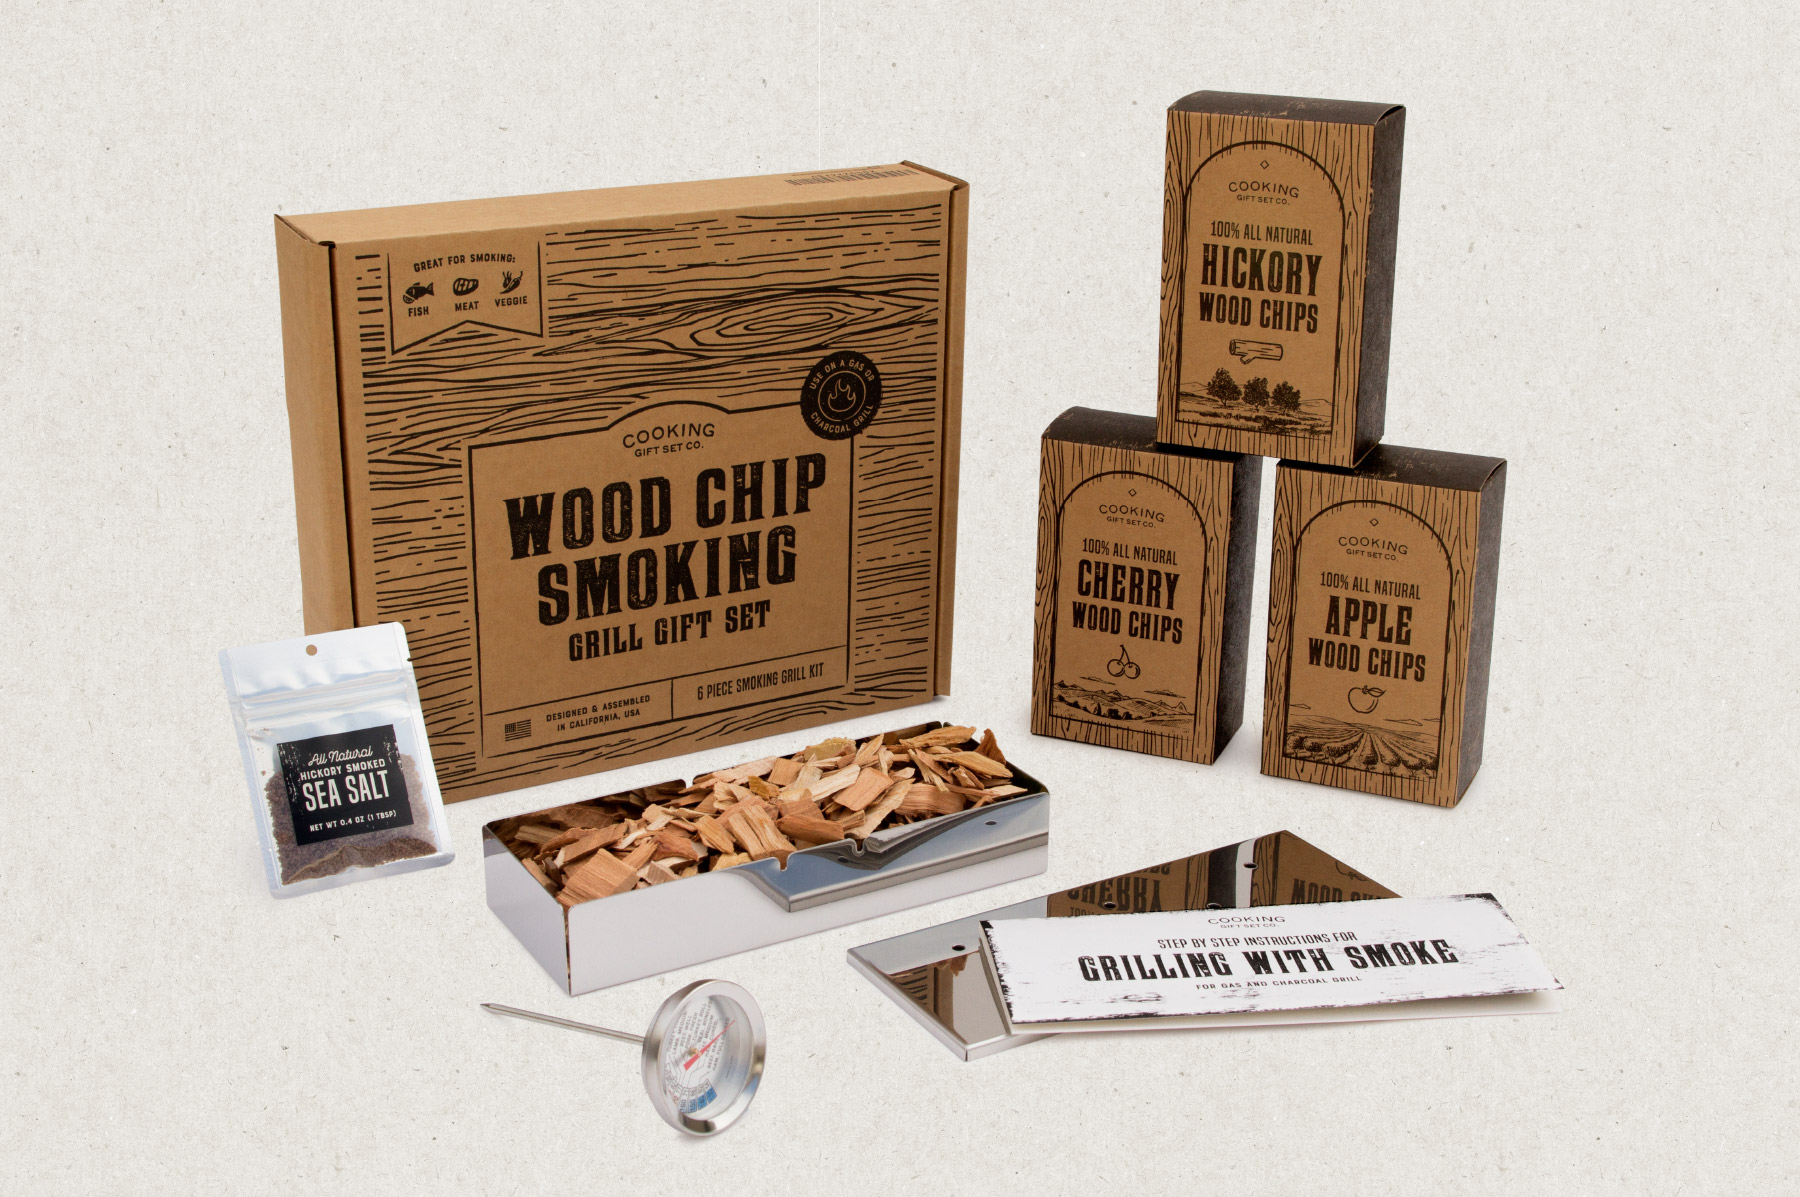 Full set with main box, three wood chip boxes, instructions, and hickory smoked salt